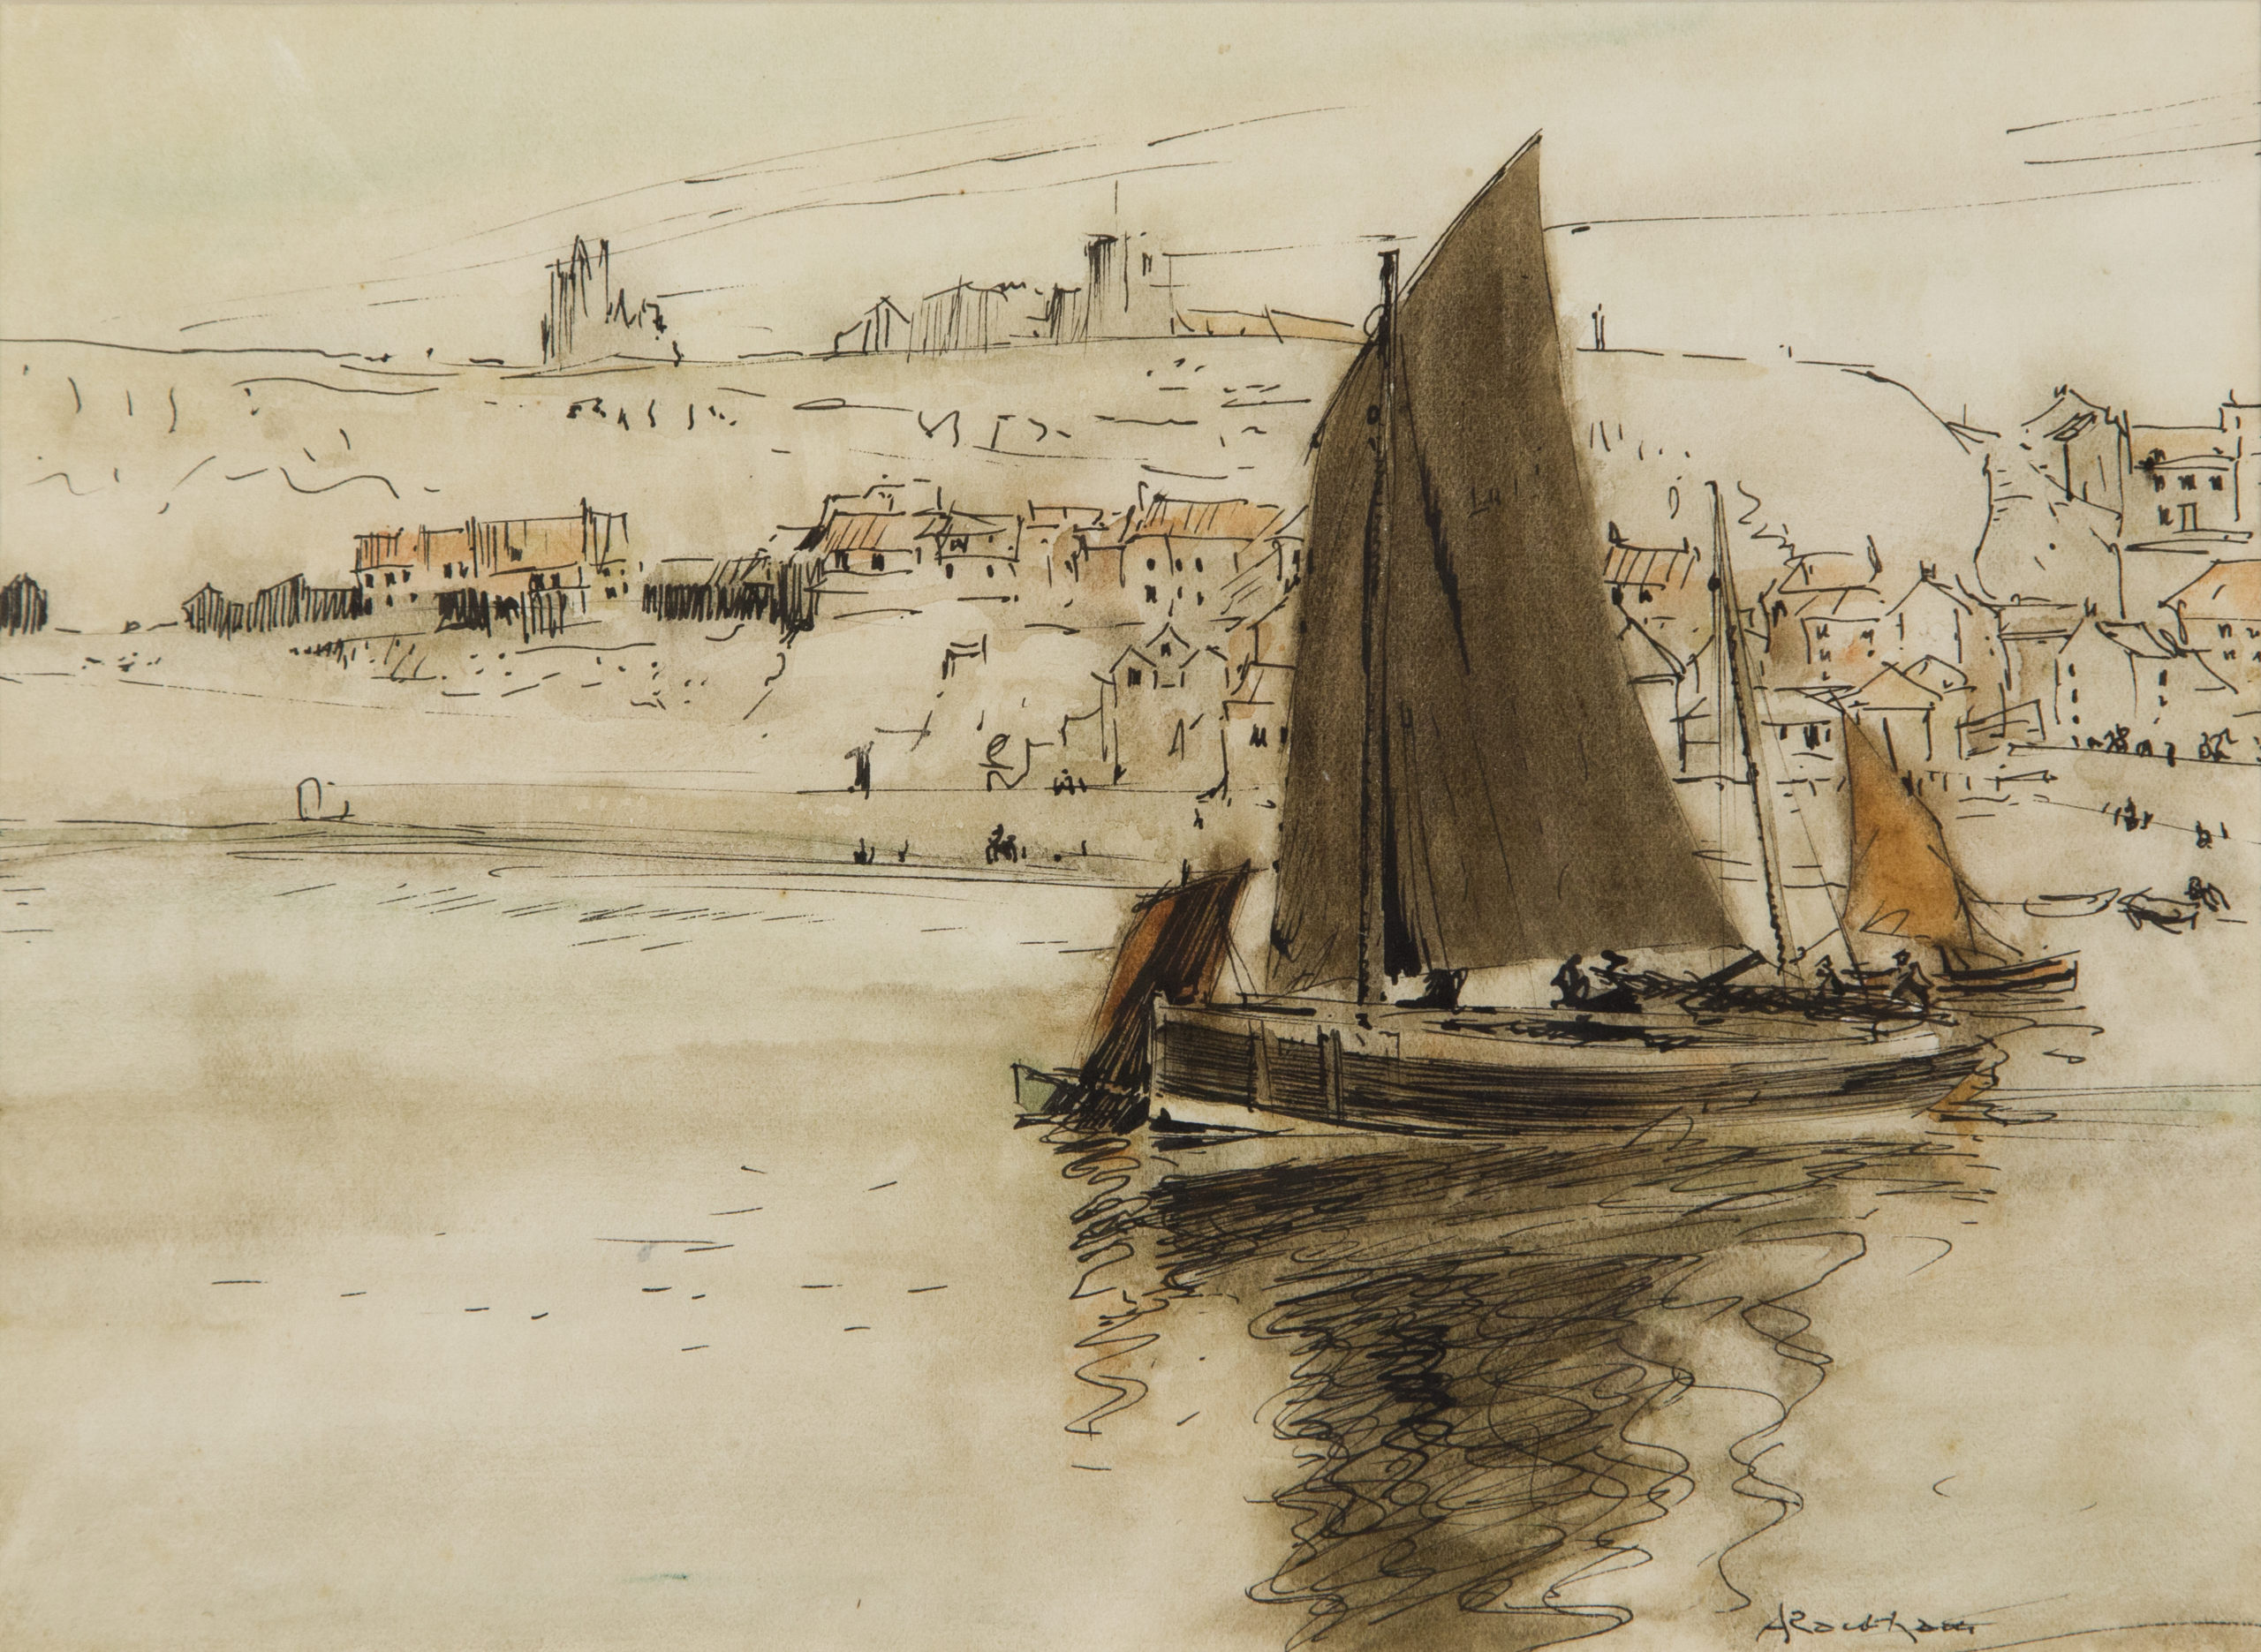 Pannett Art Gallery is Closed - Sailing Ships in Whitby Harbour by Arthur Rackham (1867 –1939)